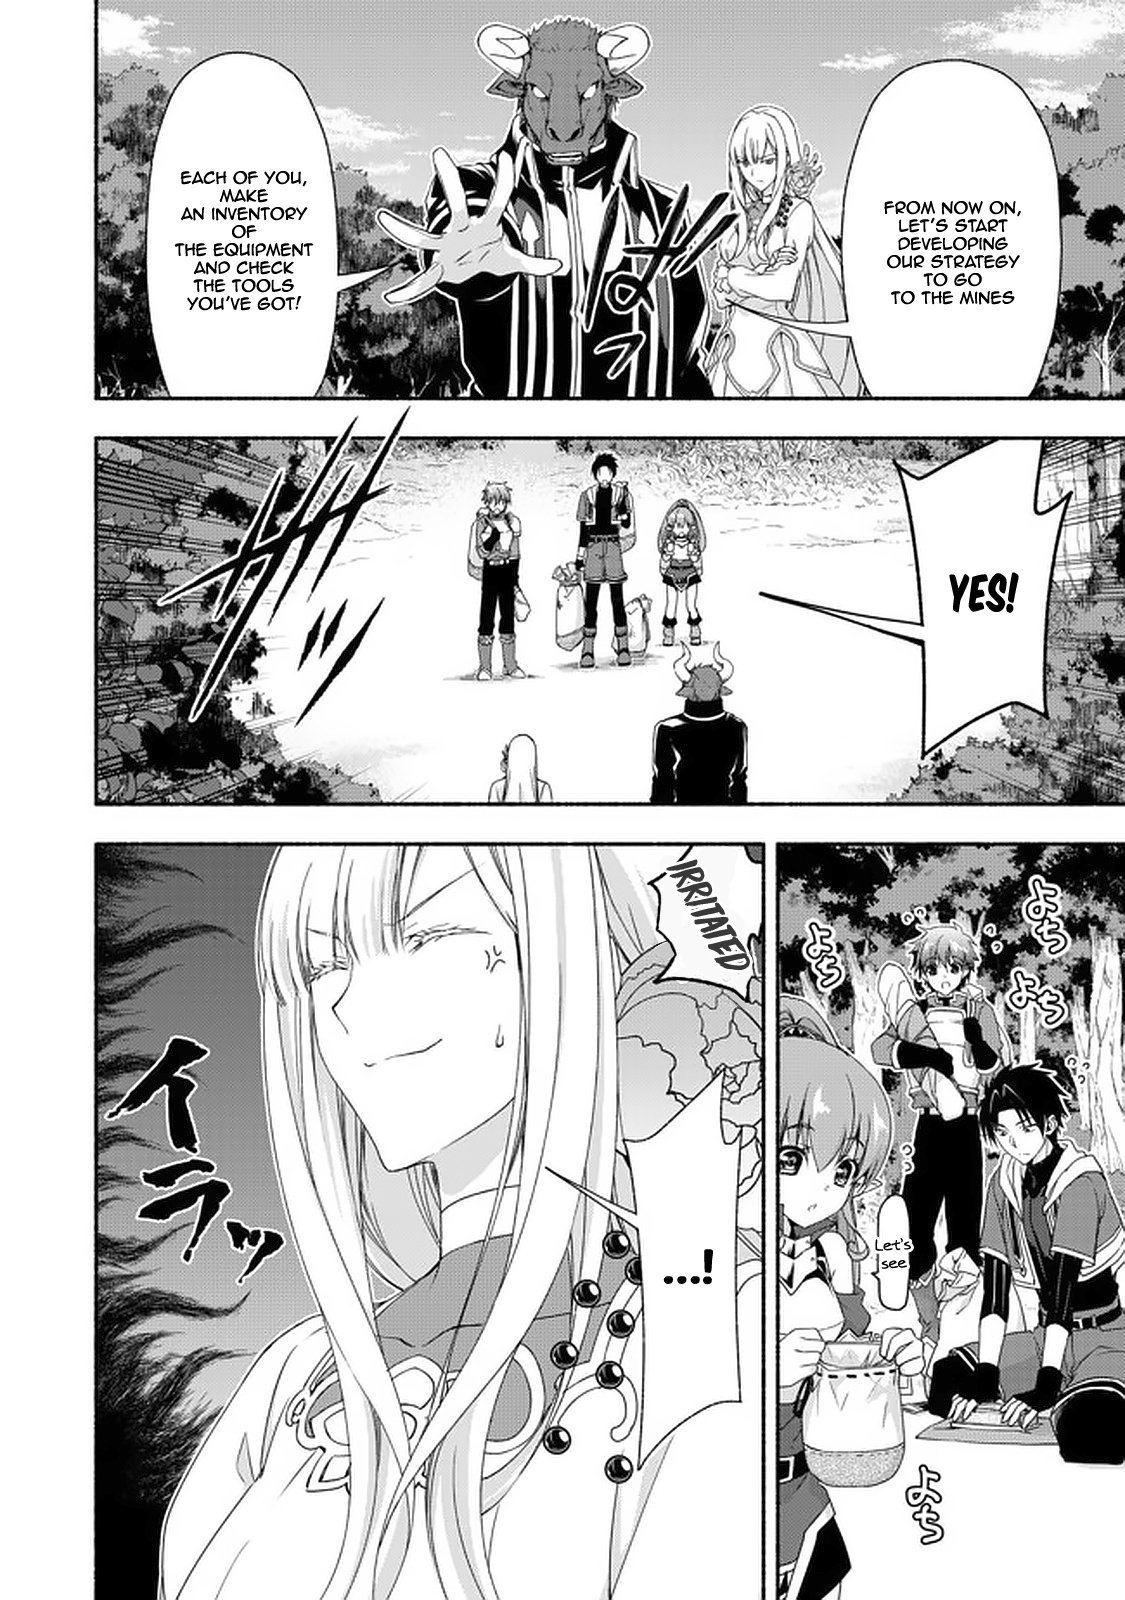 Manga Even Though I'm a Former Noble and a Single Mother, My Daughters Are Too Cute and Working as an Adventurer Isn't Too Much of a Hassle - Chapter 8.1 Page 3